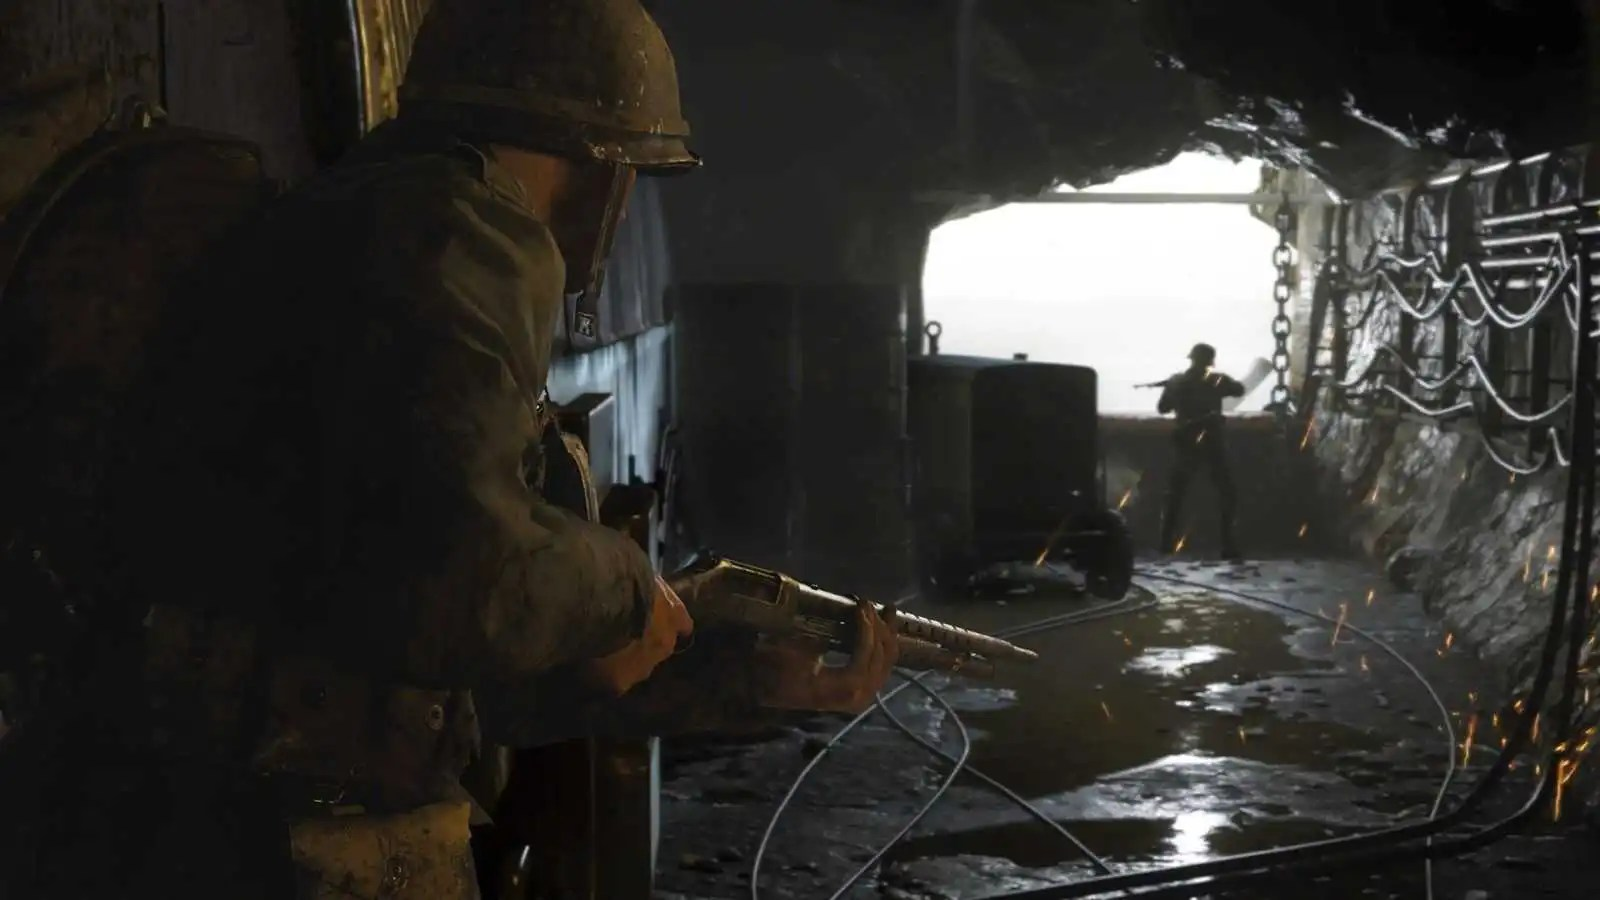 Call of Duty: WW2 Nazi Zombies, nuove, terrificanti immagini dei morti viventi